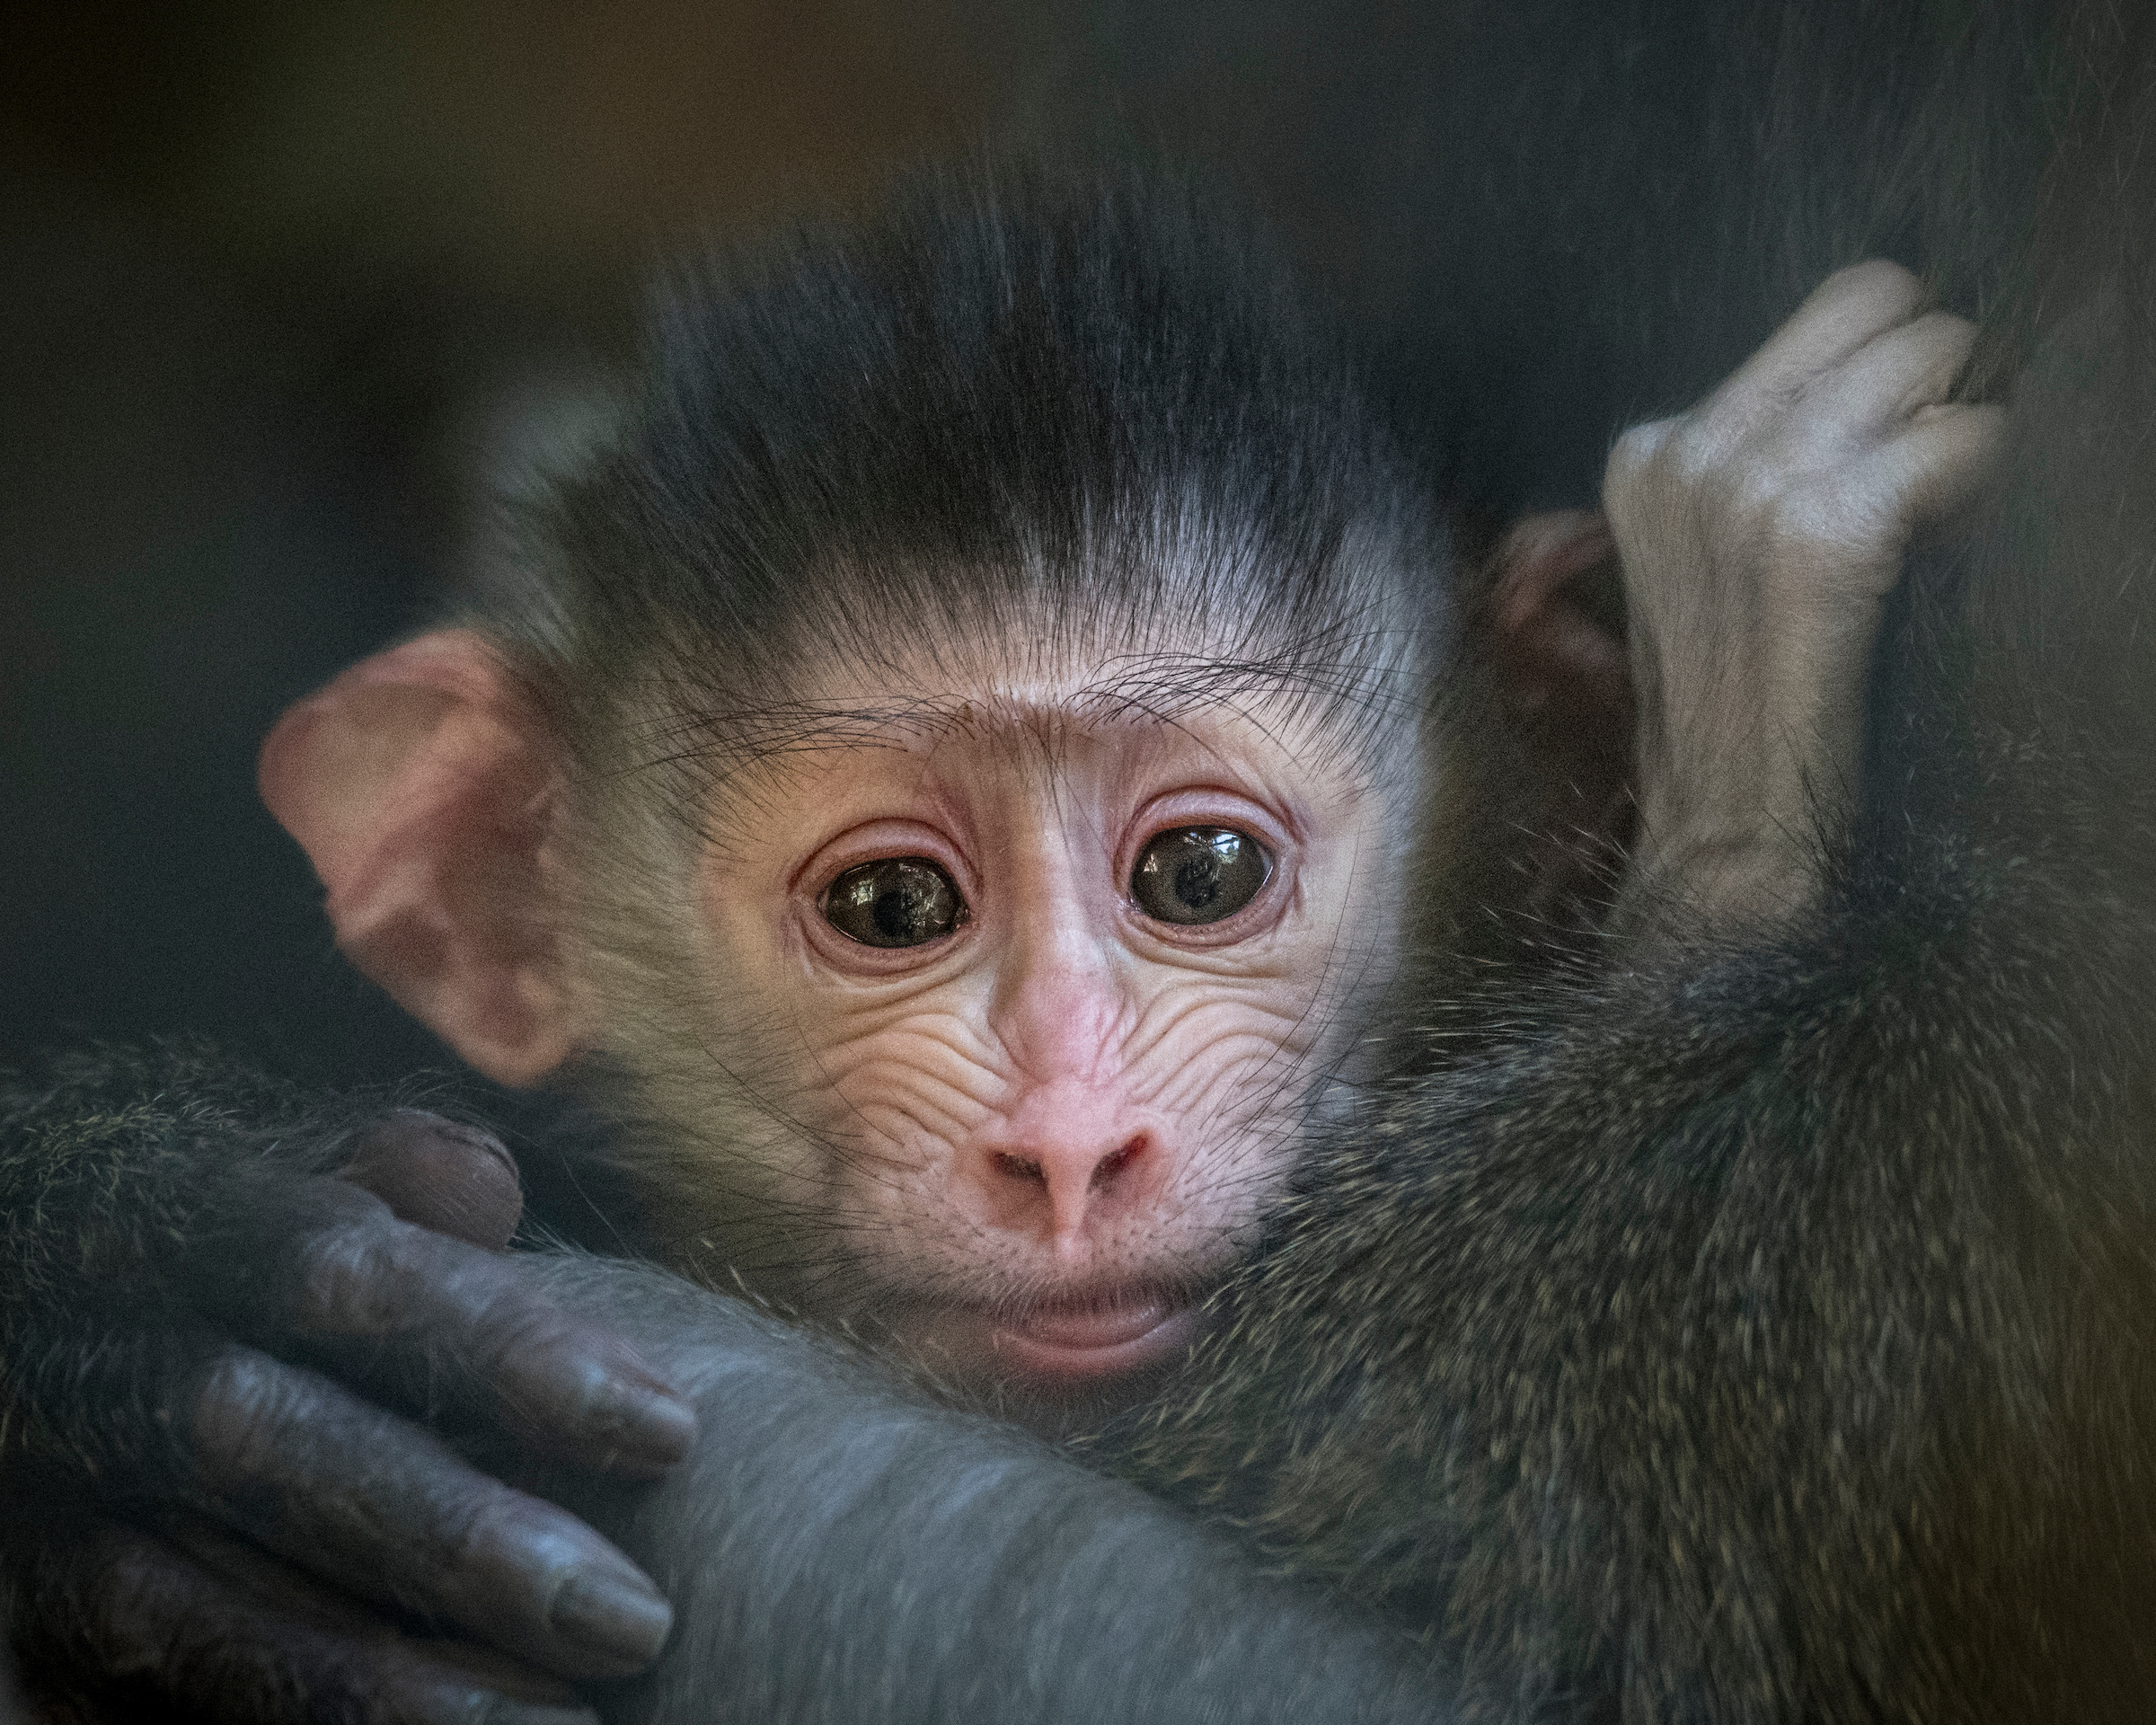 A baby is shown in a photo provided by the Los Angeles Zoo on Sept. 25, 2017.